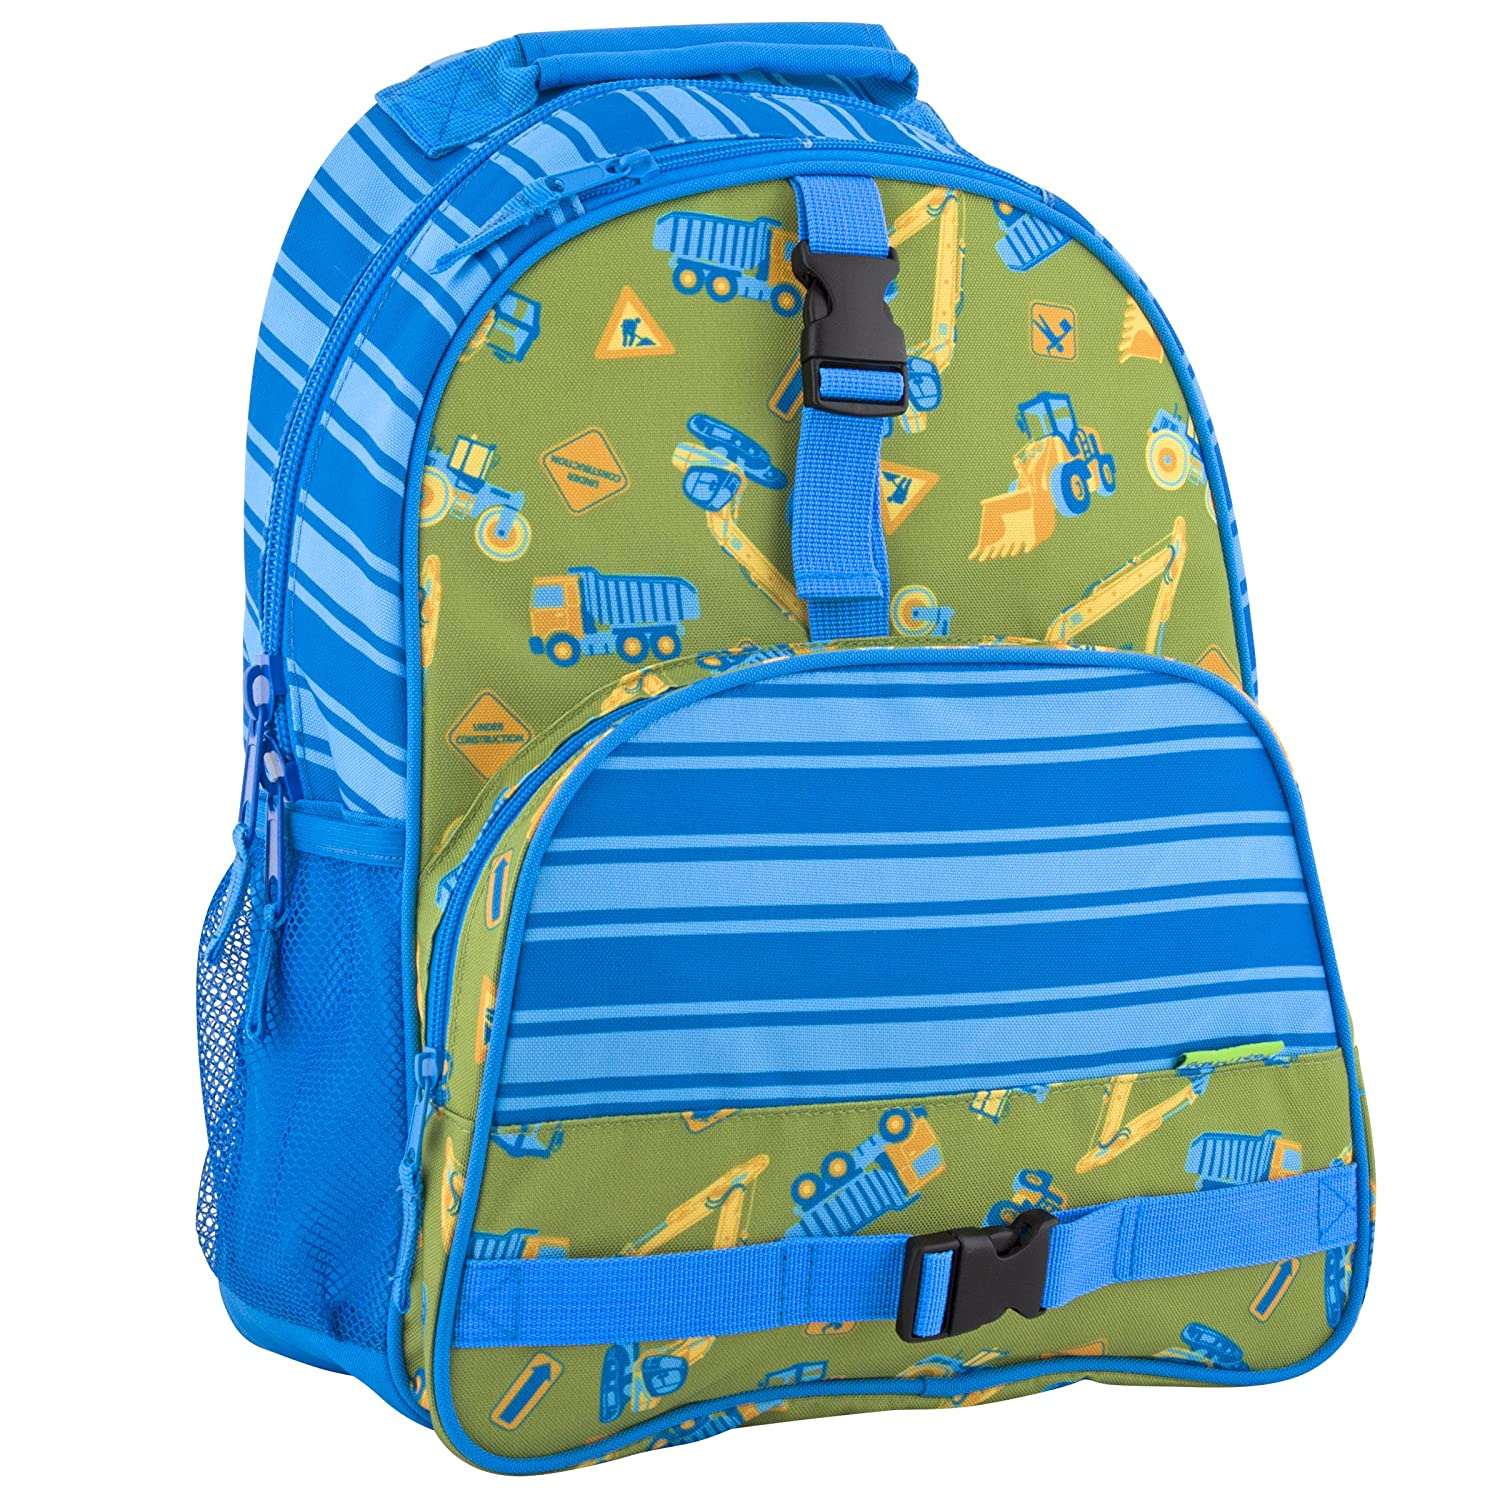 Stephen Joseph All Over Print Backpack Accessory Butterfly No Size Stephen Joseph Children' s Apparel SJ112025